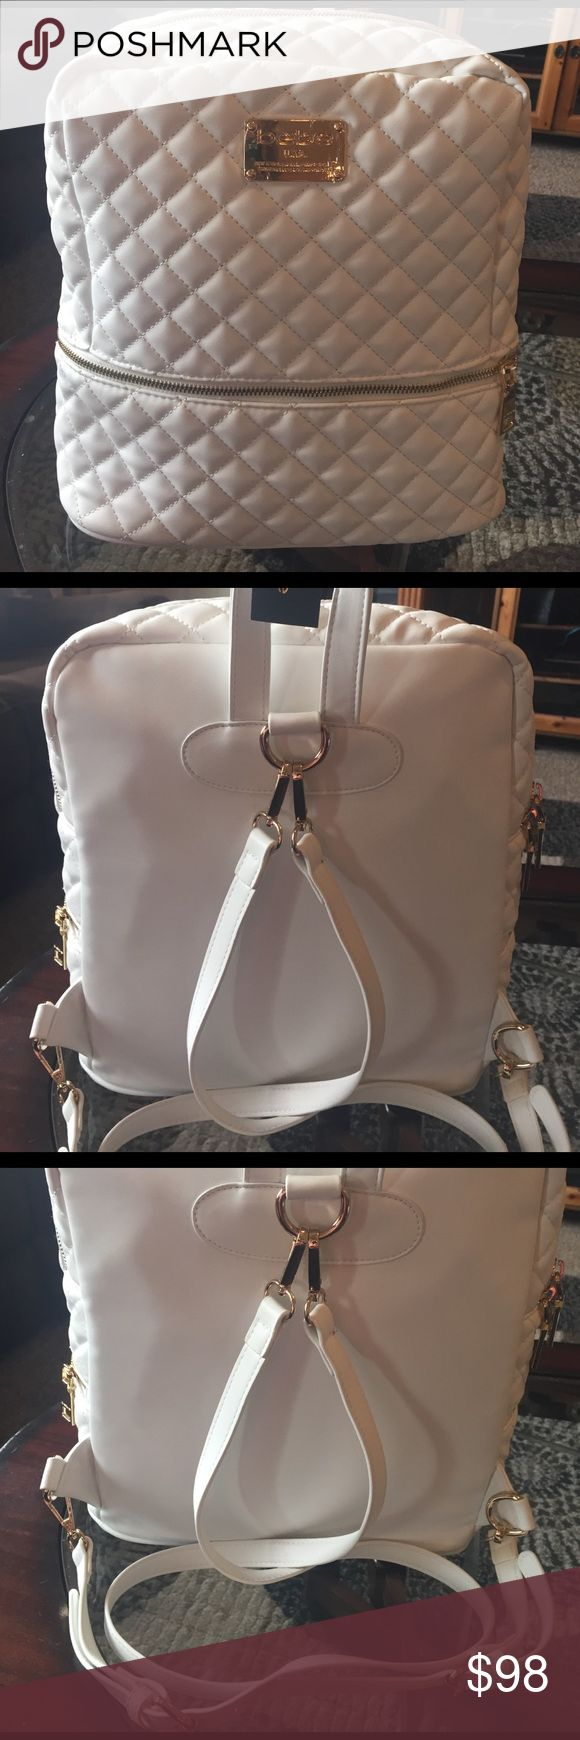 """🌺NEW! BEBE QUILTED LEATHER """"DANIELLE"""" BACKPACK BRAND NEW! AUTHENTIC BEBE CRISPY WHITE QUILTED LEATHER """"DANIELLE"""" BACKPACK WITH GOLD HARDWARE, & SO SOFT.....Approximate Measurements-13"""" X 12"""" X 5""""-NEVER USED! EXCELLENT NEW CONDITION!! bebe Bags Backpacks"""